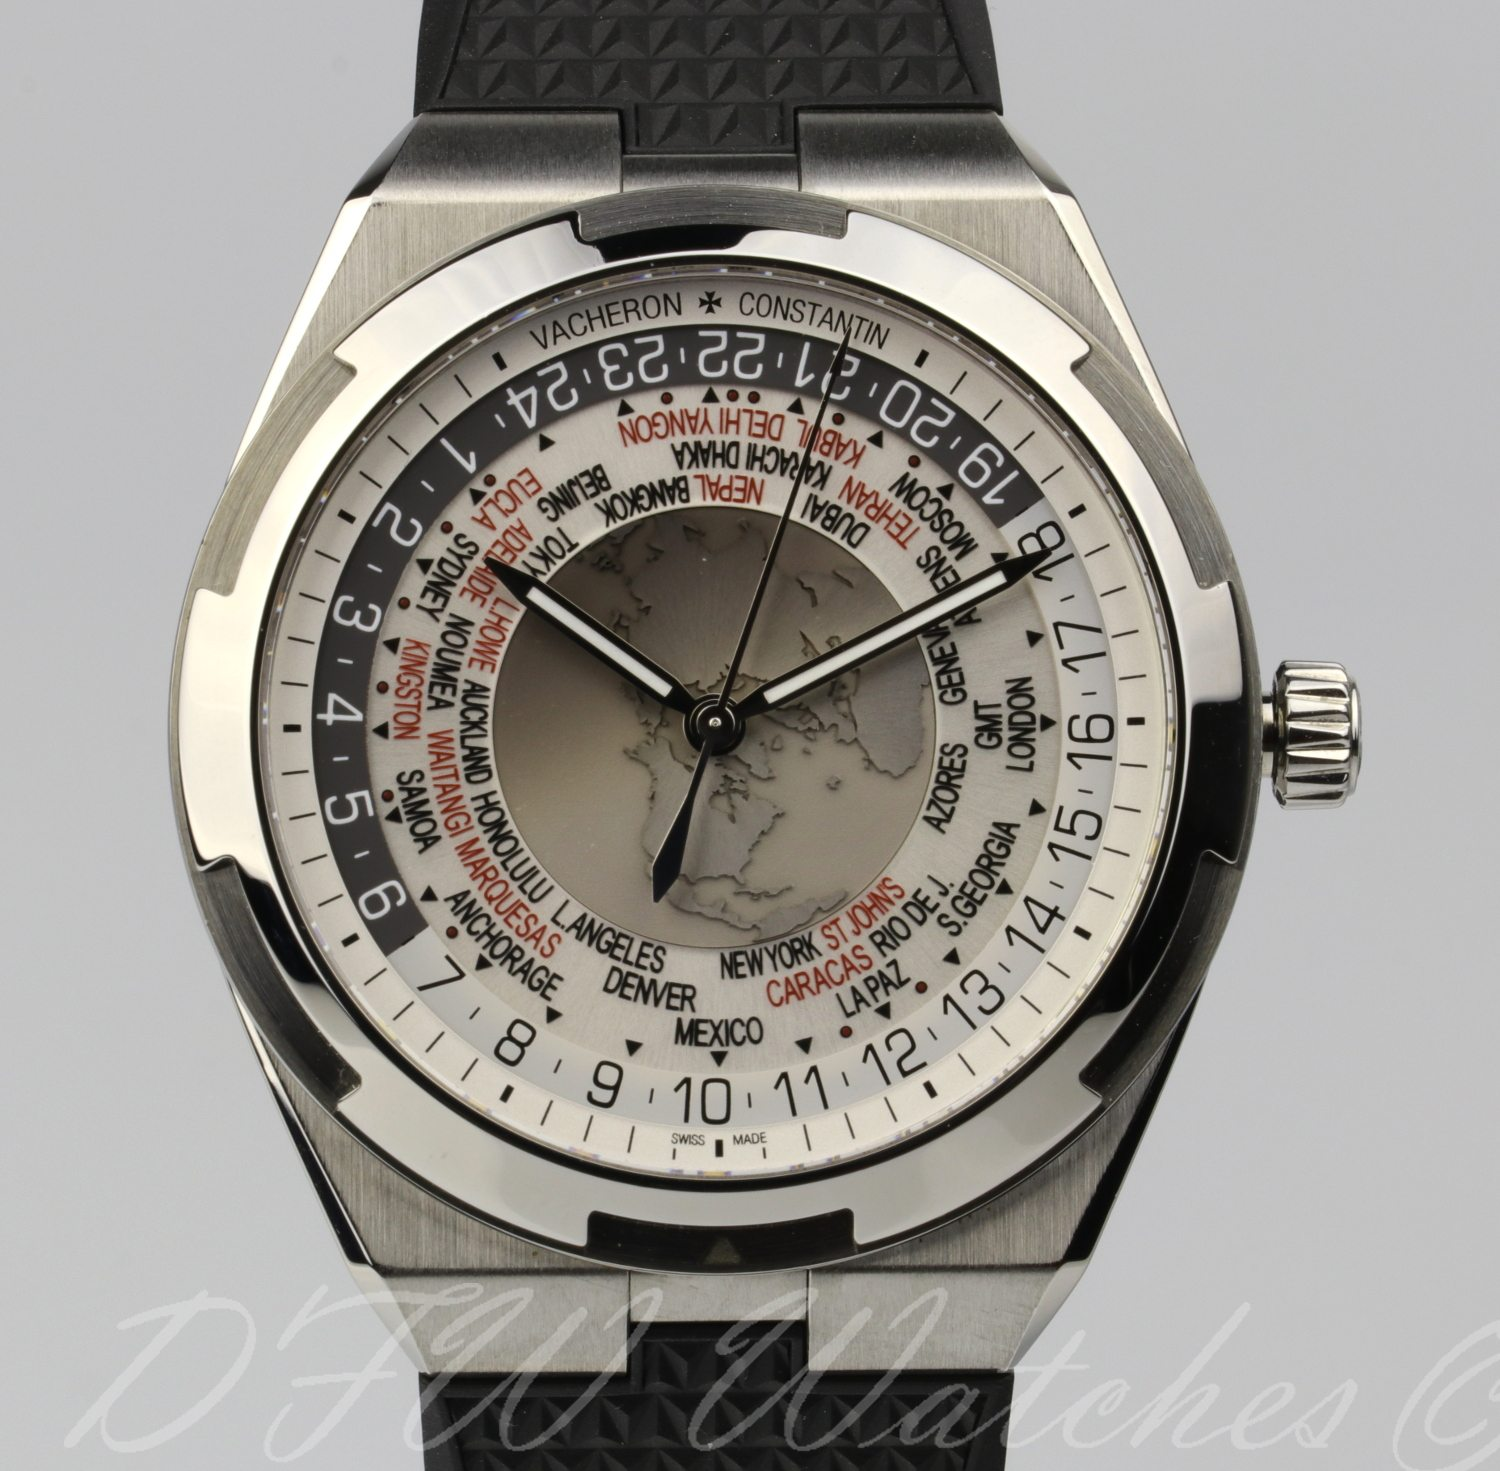 philippe owned limited time worldtime world pre complications watches edition new patek york